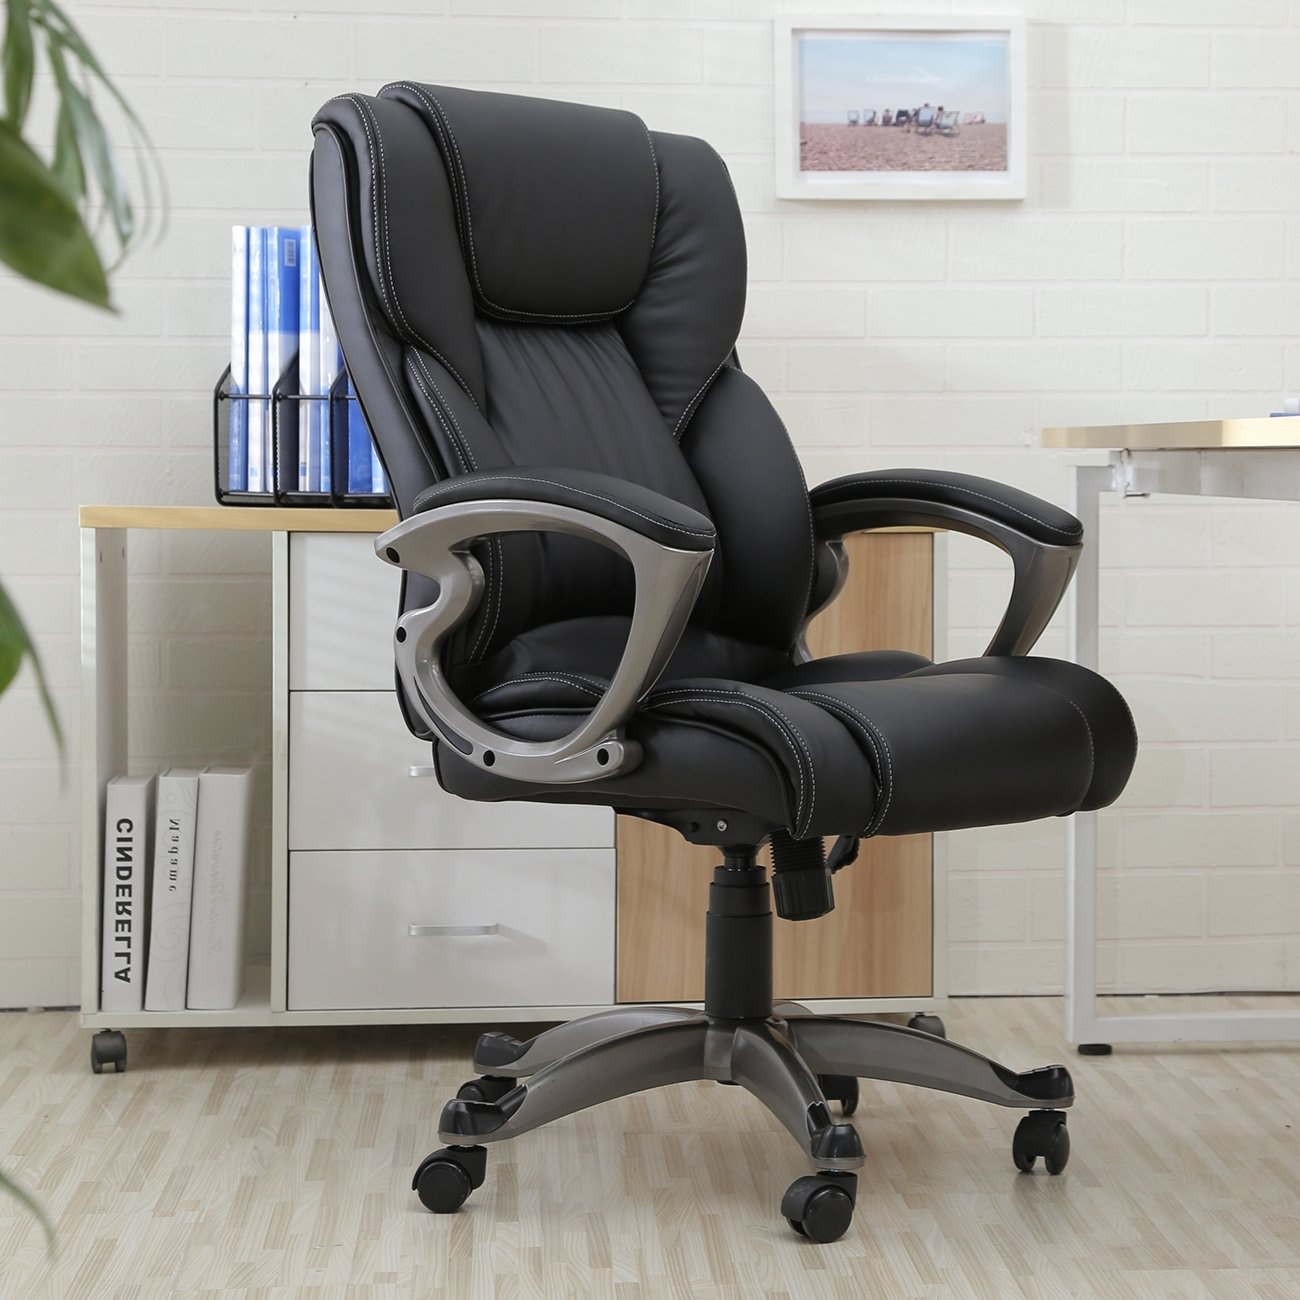 Executive Office Chair High Back Task Ergonomic Computer Desk Intended For Most Current Black Executive Office Chairs (View 4 of 20)